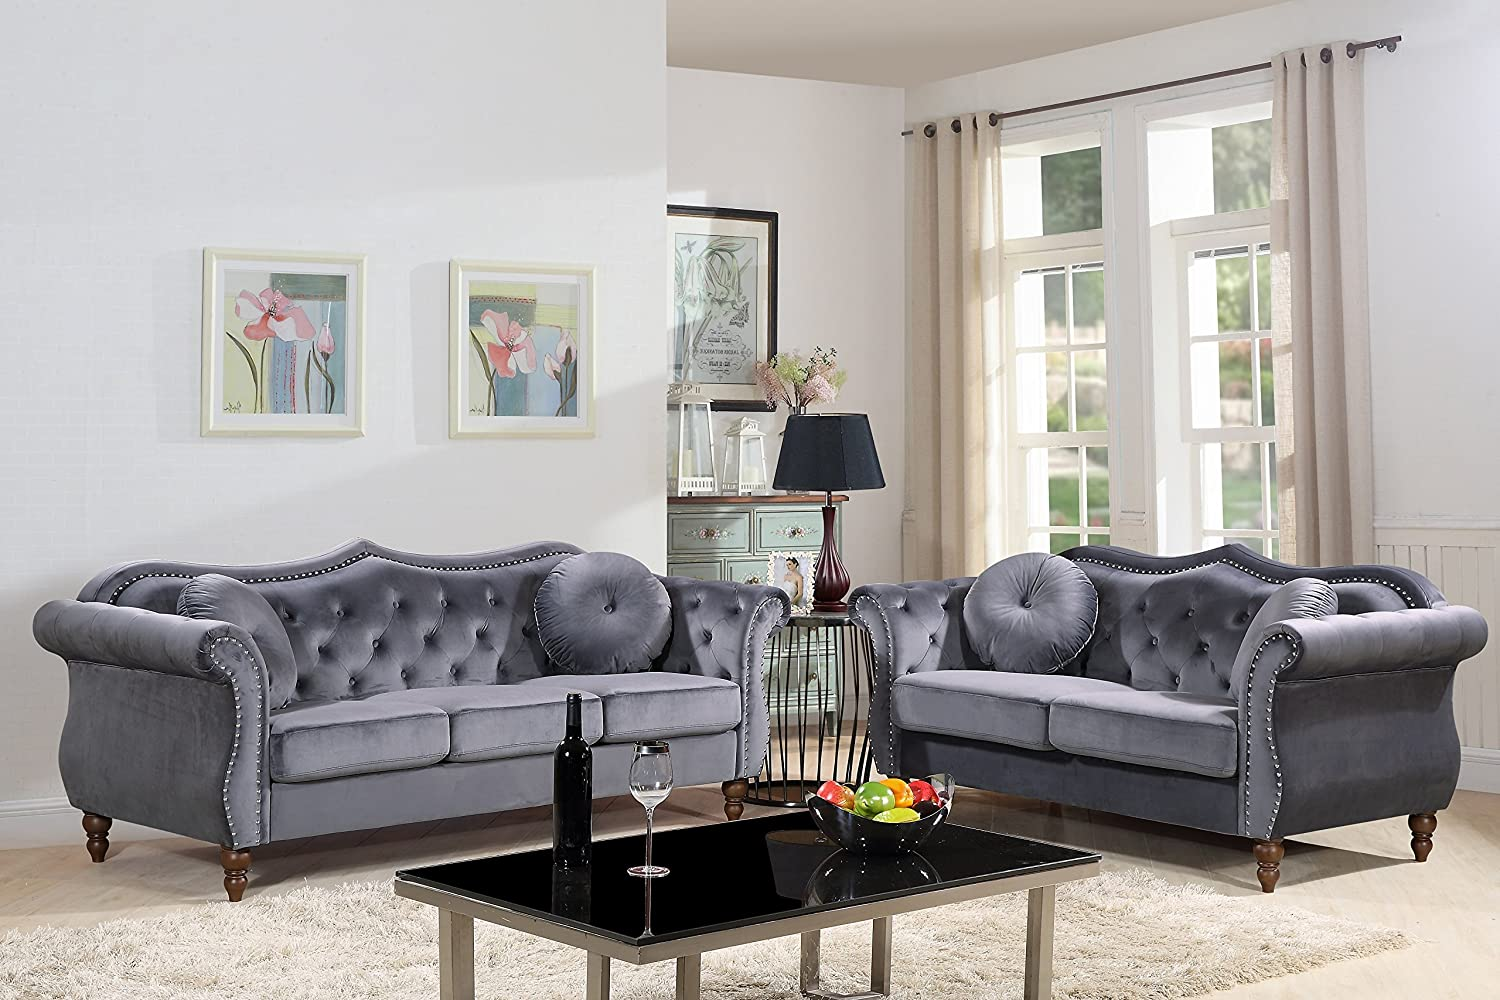 Container Furniture Direct S5366-2PC Carbon Velvet Upholstered Classic  Chesterfield Sofa Set, 79.5\